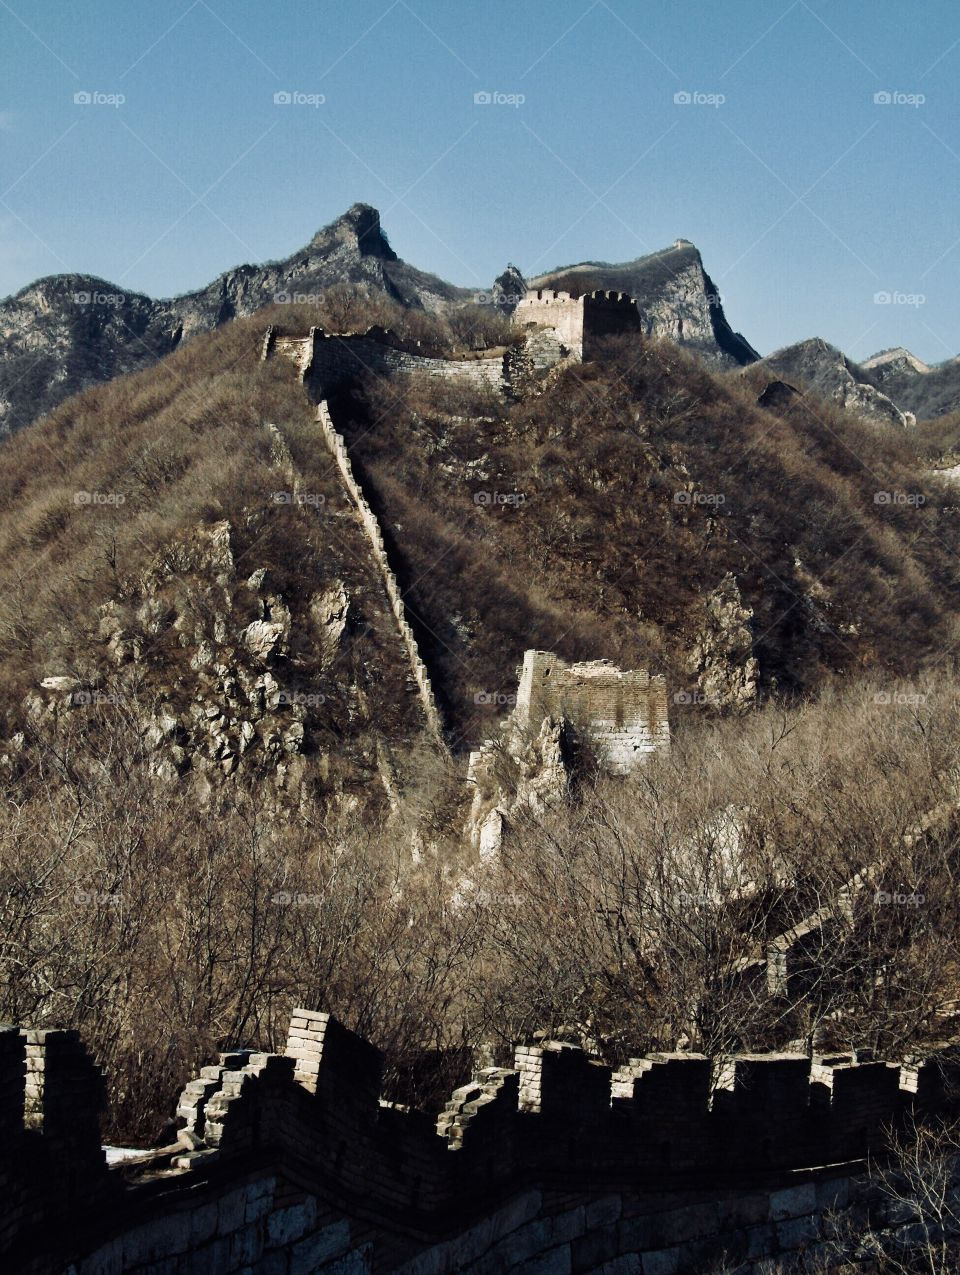 Hiking the ruins of the Great Wall near Beijing China